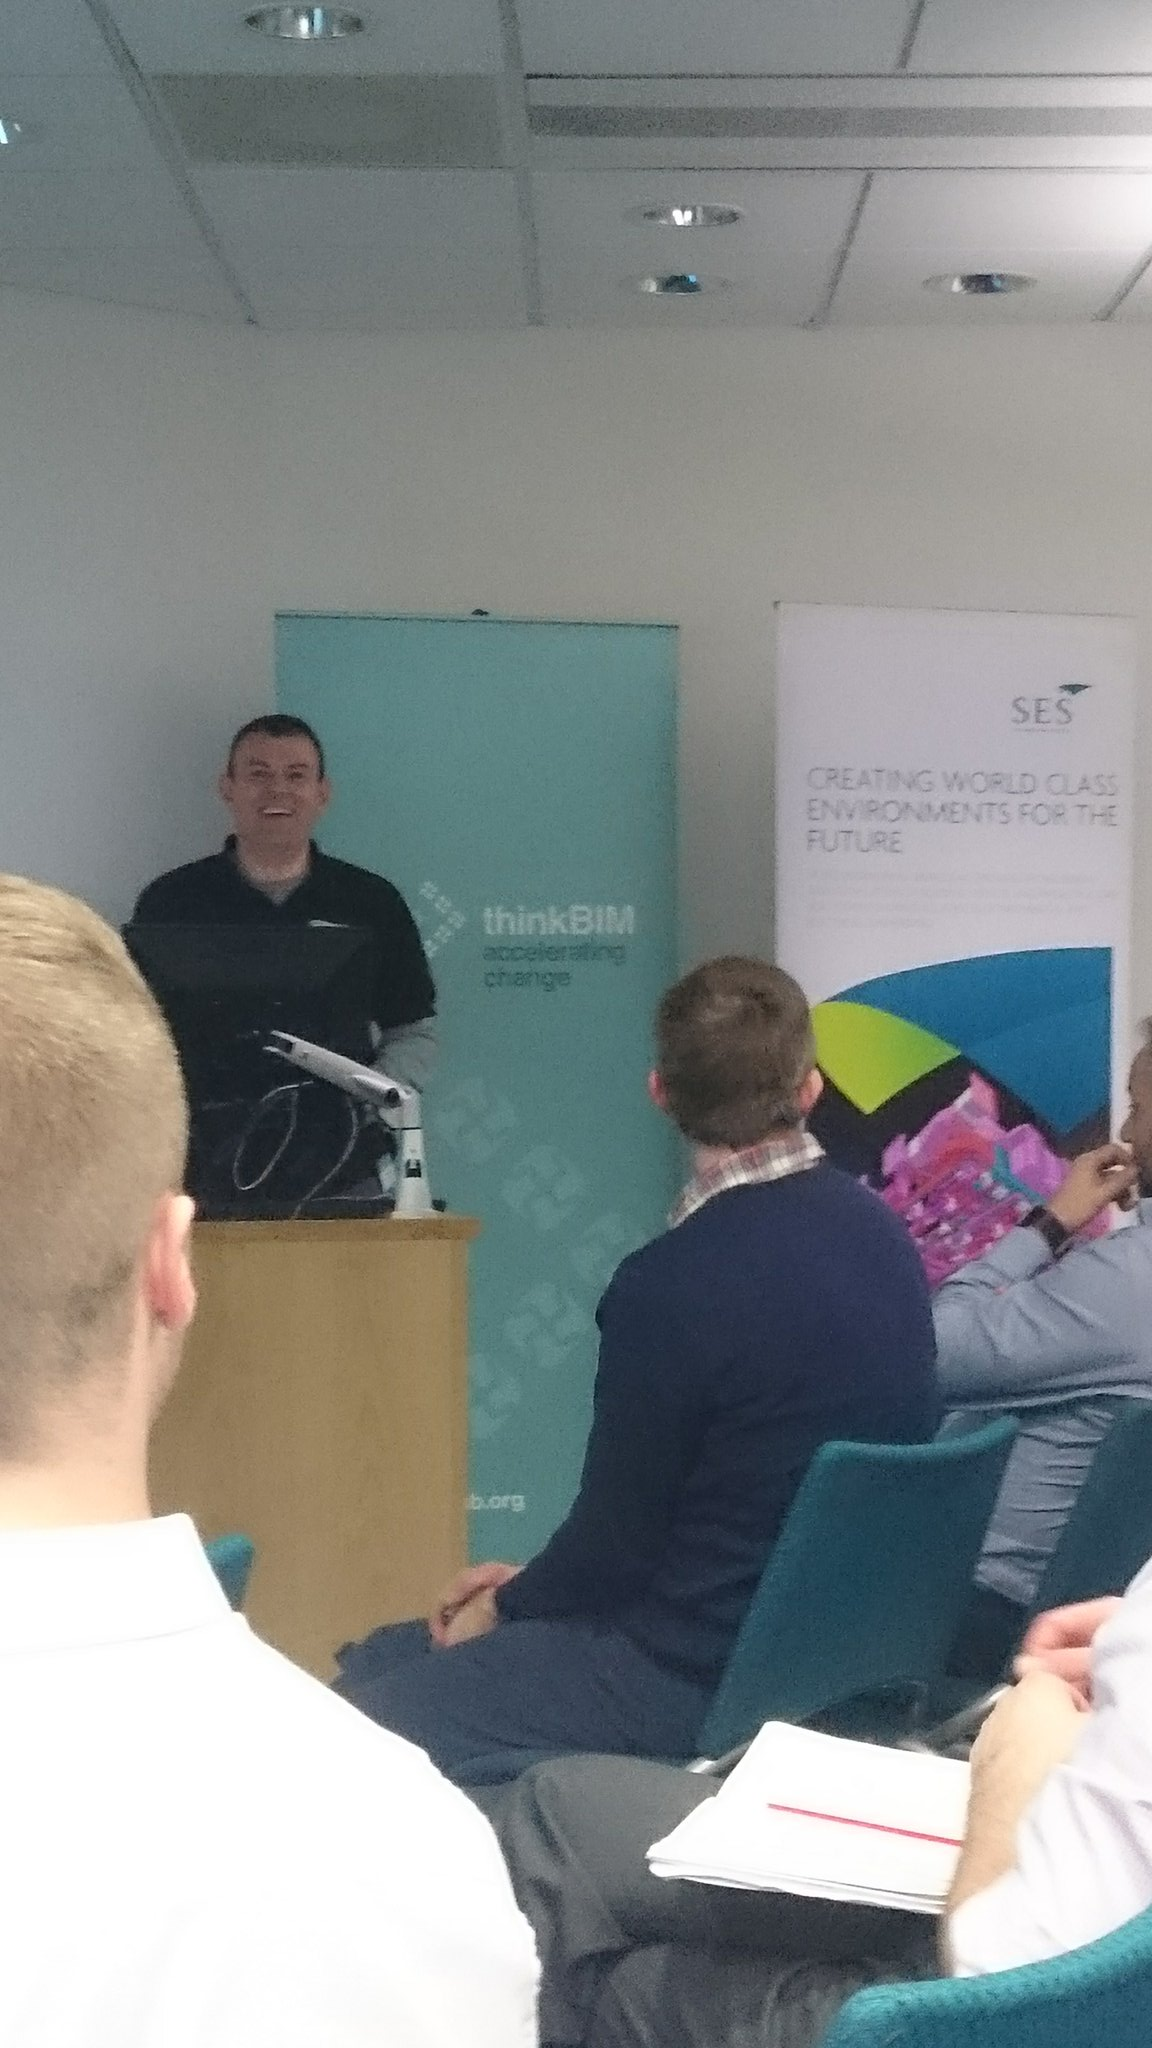 #TBIM2017 being introduced by @djhreed67, a big smile when he realises where tonight's chair is! #WhatCanGoWrong? https://t.co/lAxErZ8NR4